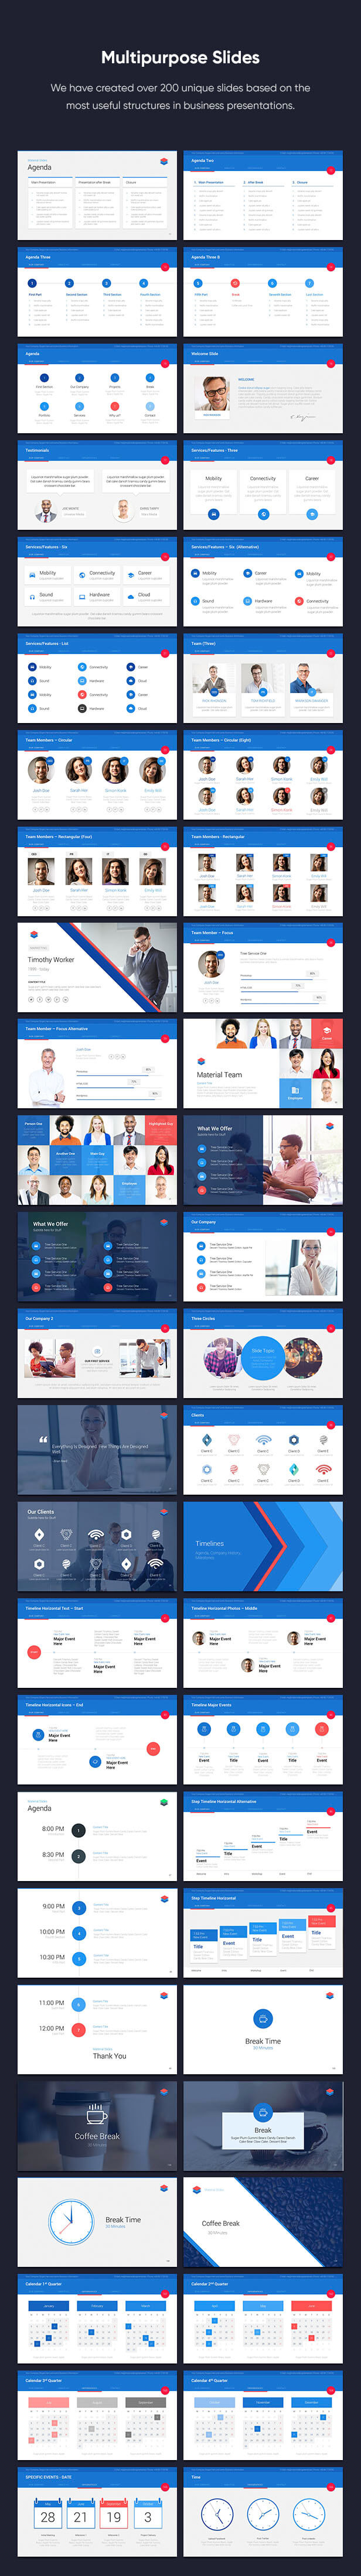 Material PowerPoint Presentation Template - 8